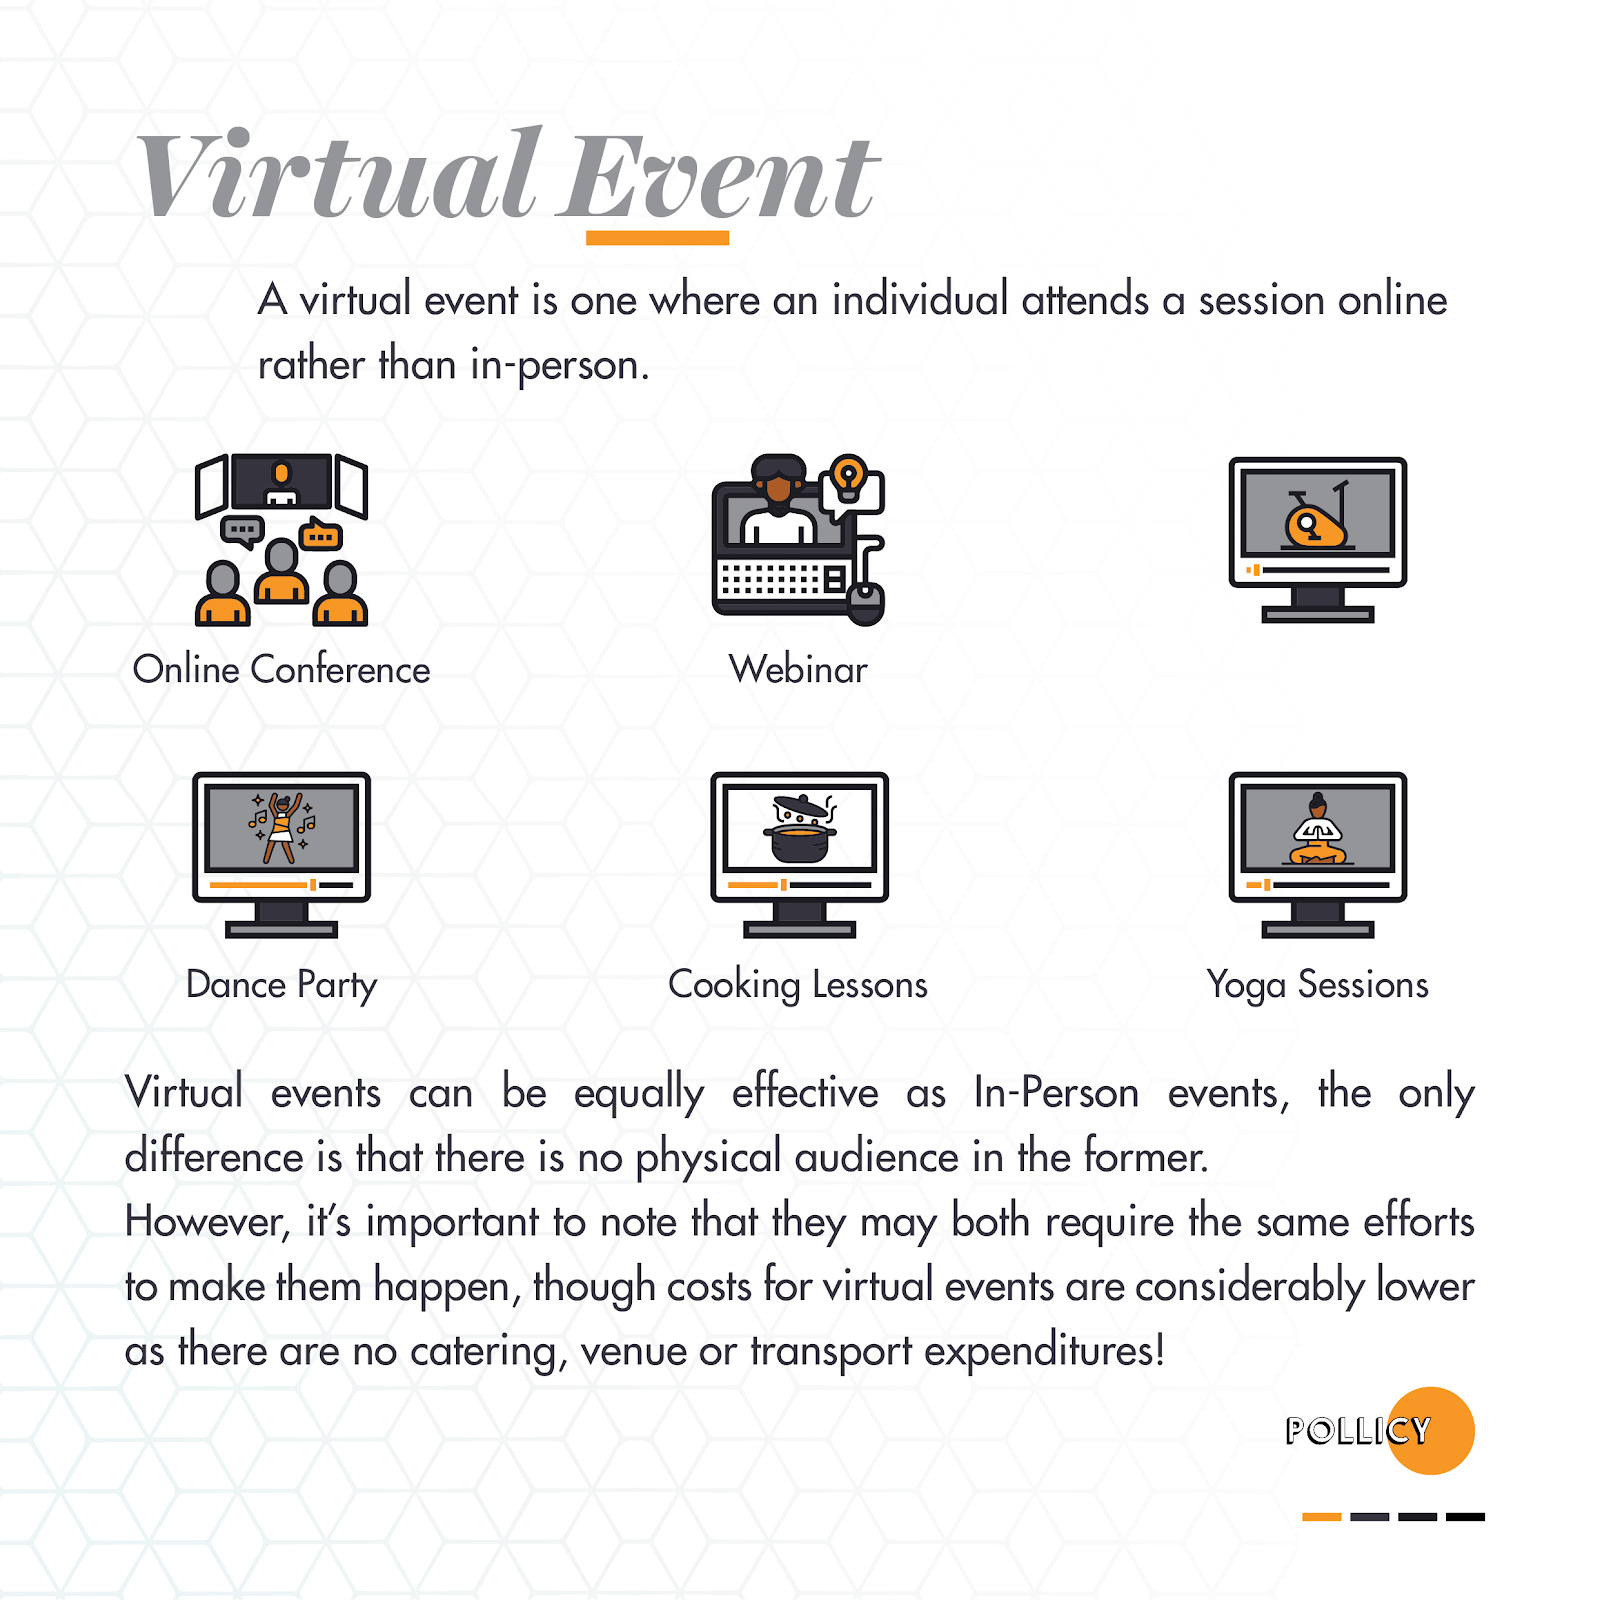 Here S A Guide To Organising Successful Virtual Events By Pollicy Pollicy Medium